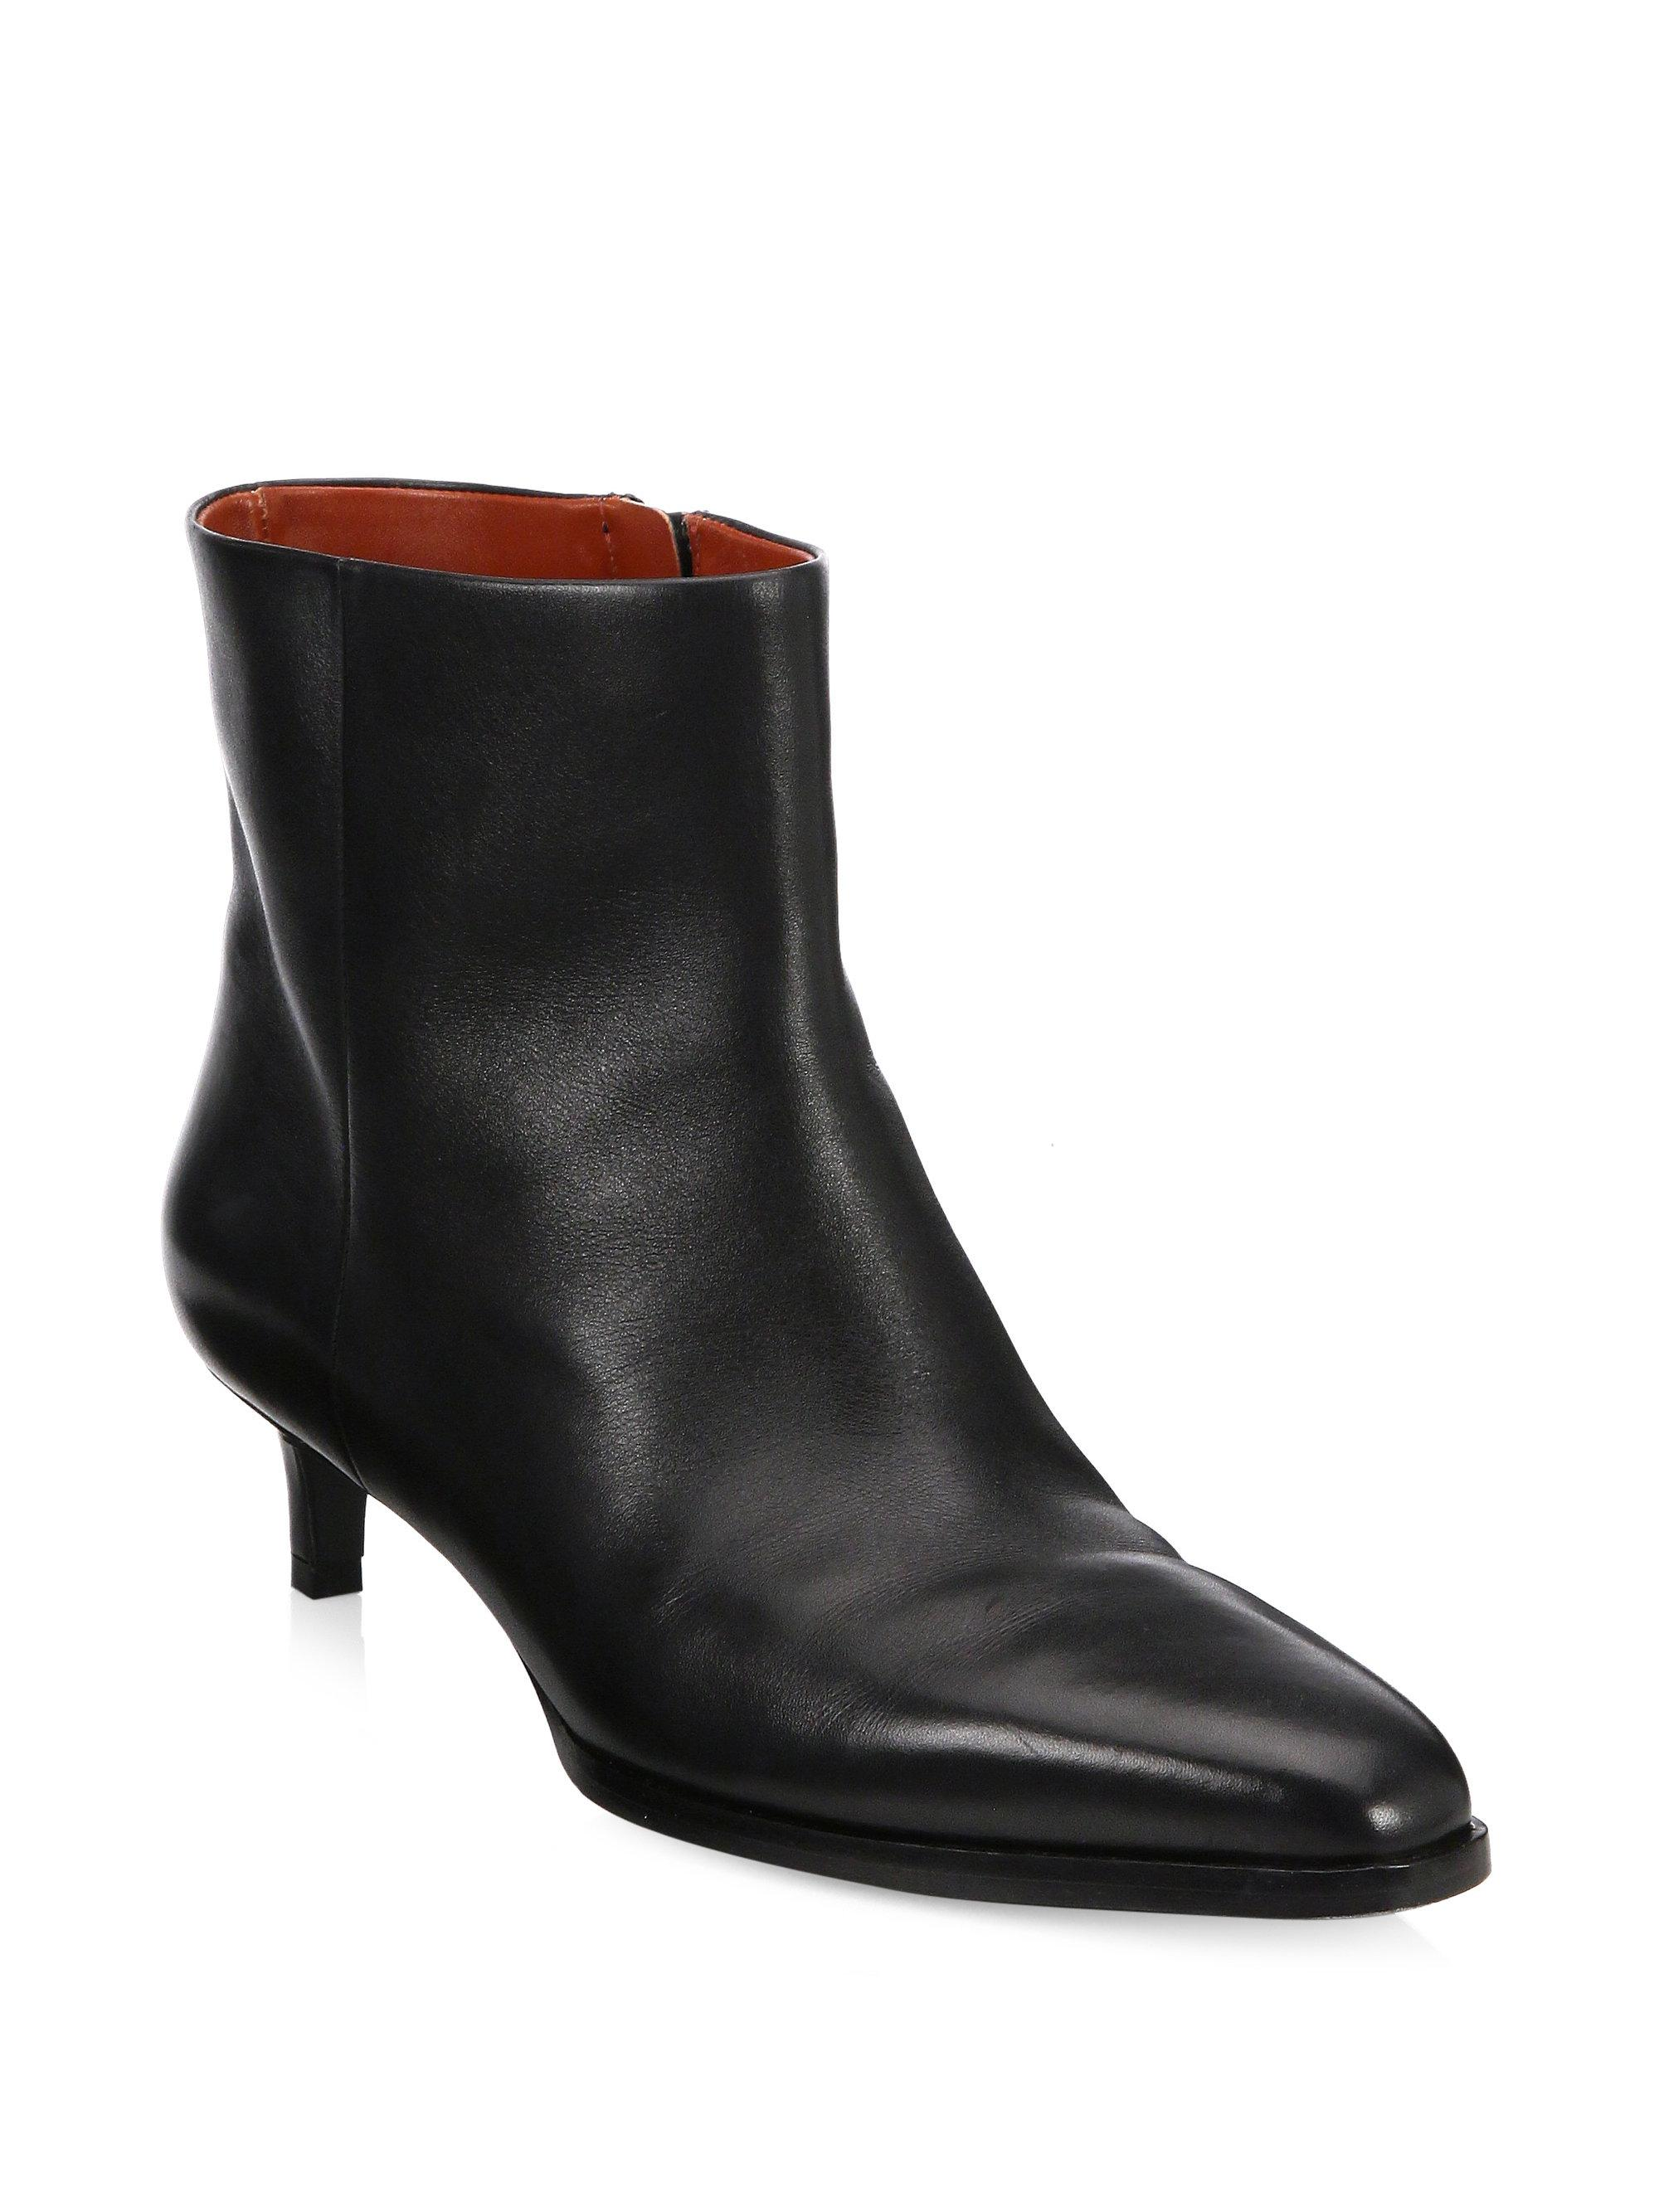 3.1 Phillip Lim Agatha Leather Lace-Up Booties